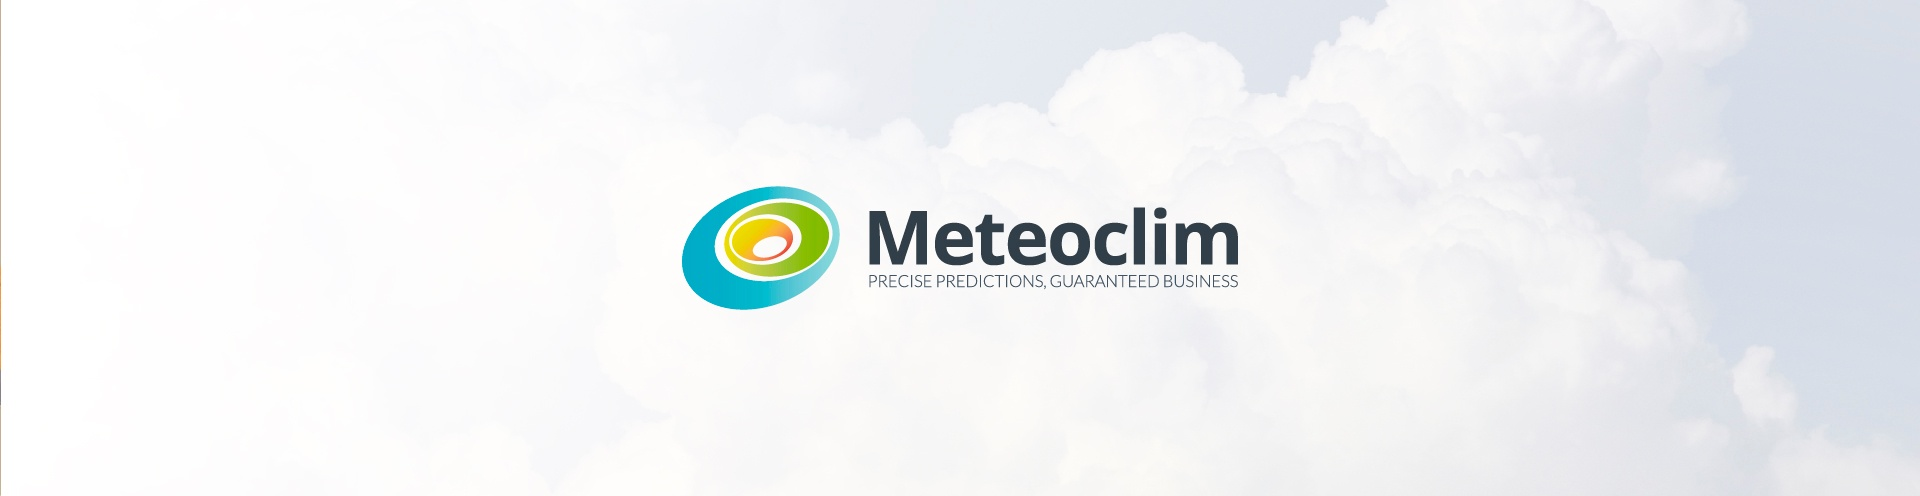 Caso de exito en marketing meteoclim